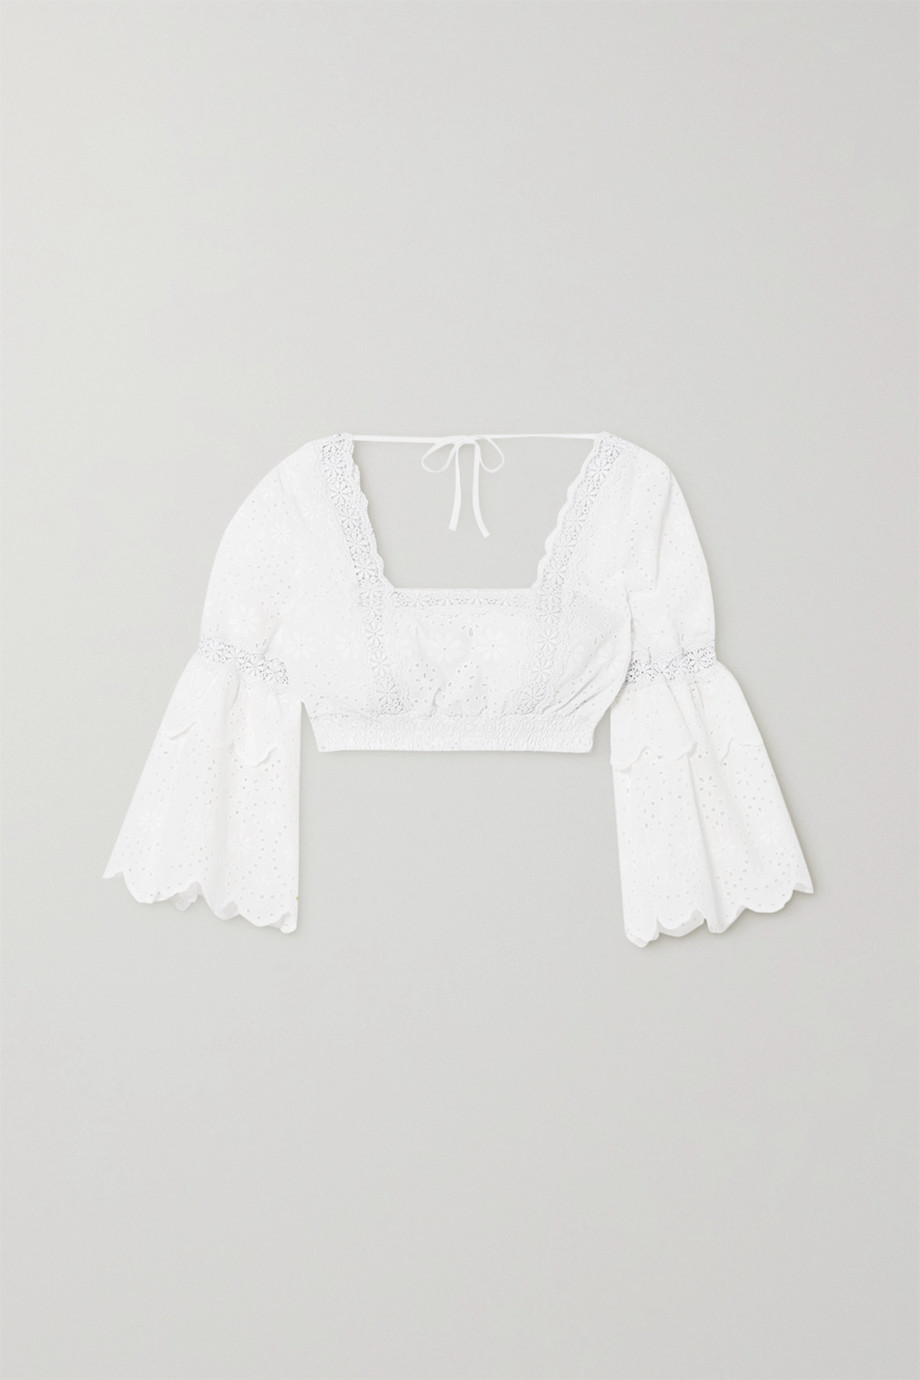 Charo Ruiz Hadi cropped crocheted lace-trimmed broderie anglaise cotton-blend top